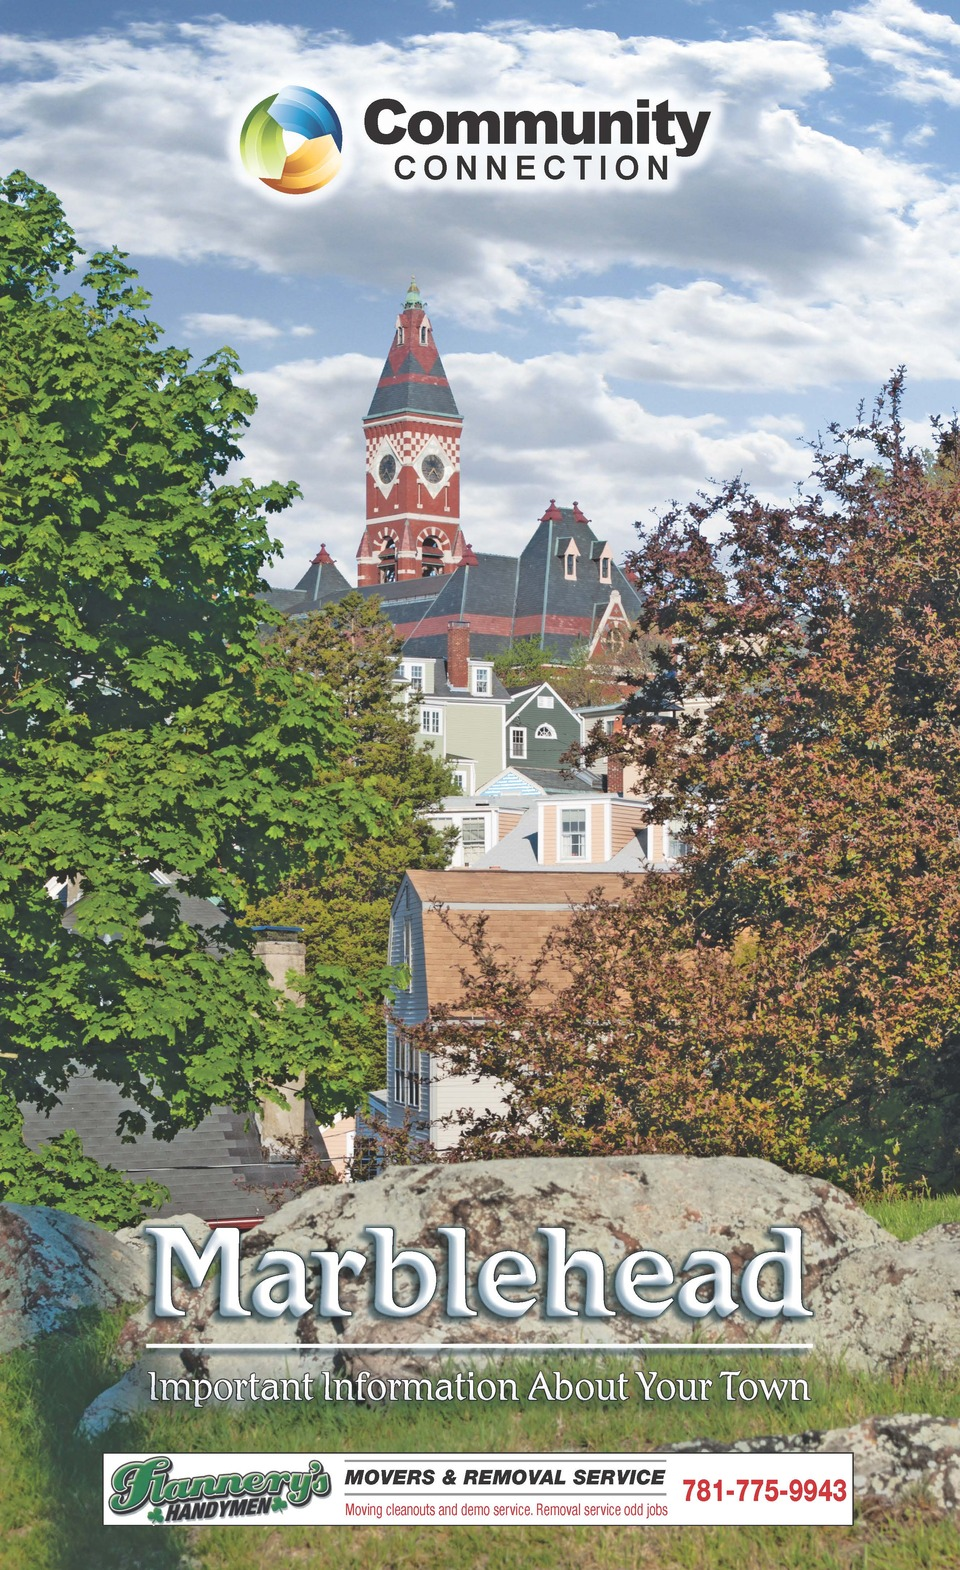 Marblehead Community Connection